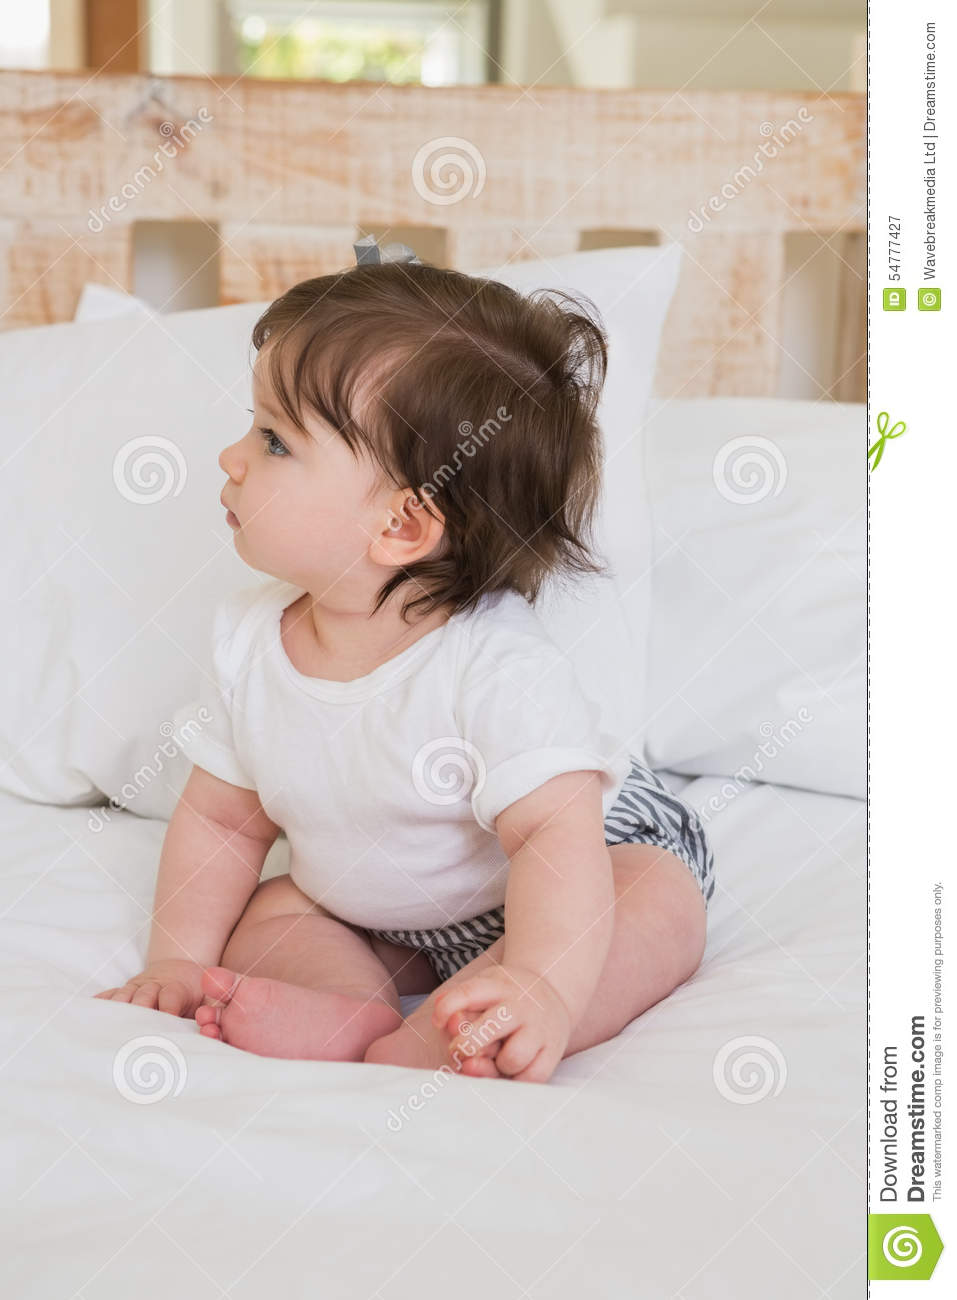 very beautufil cute baby girl stock image - image of cute, smiling